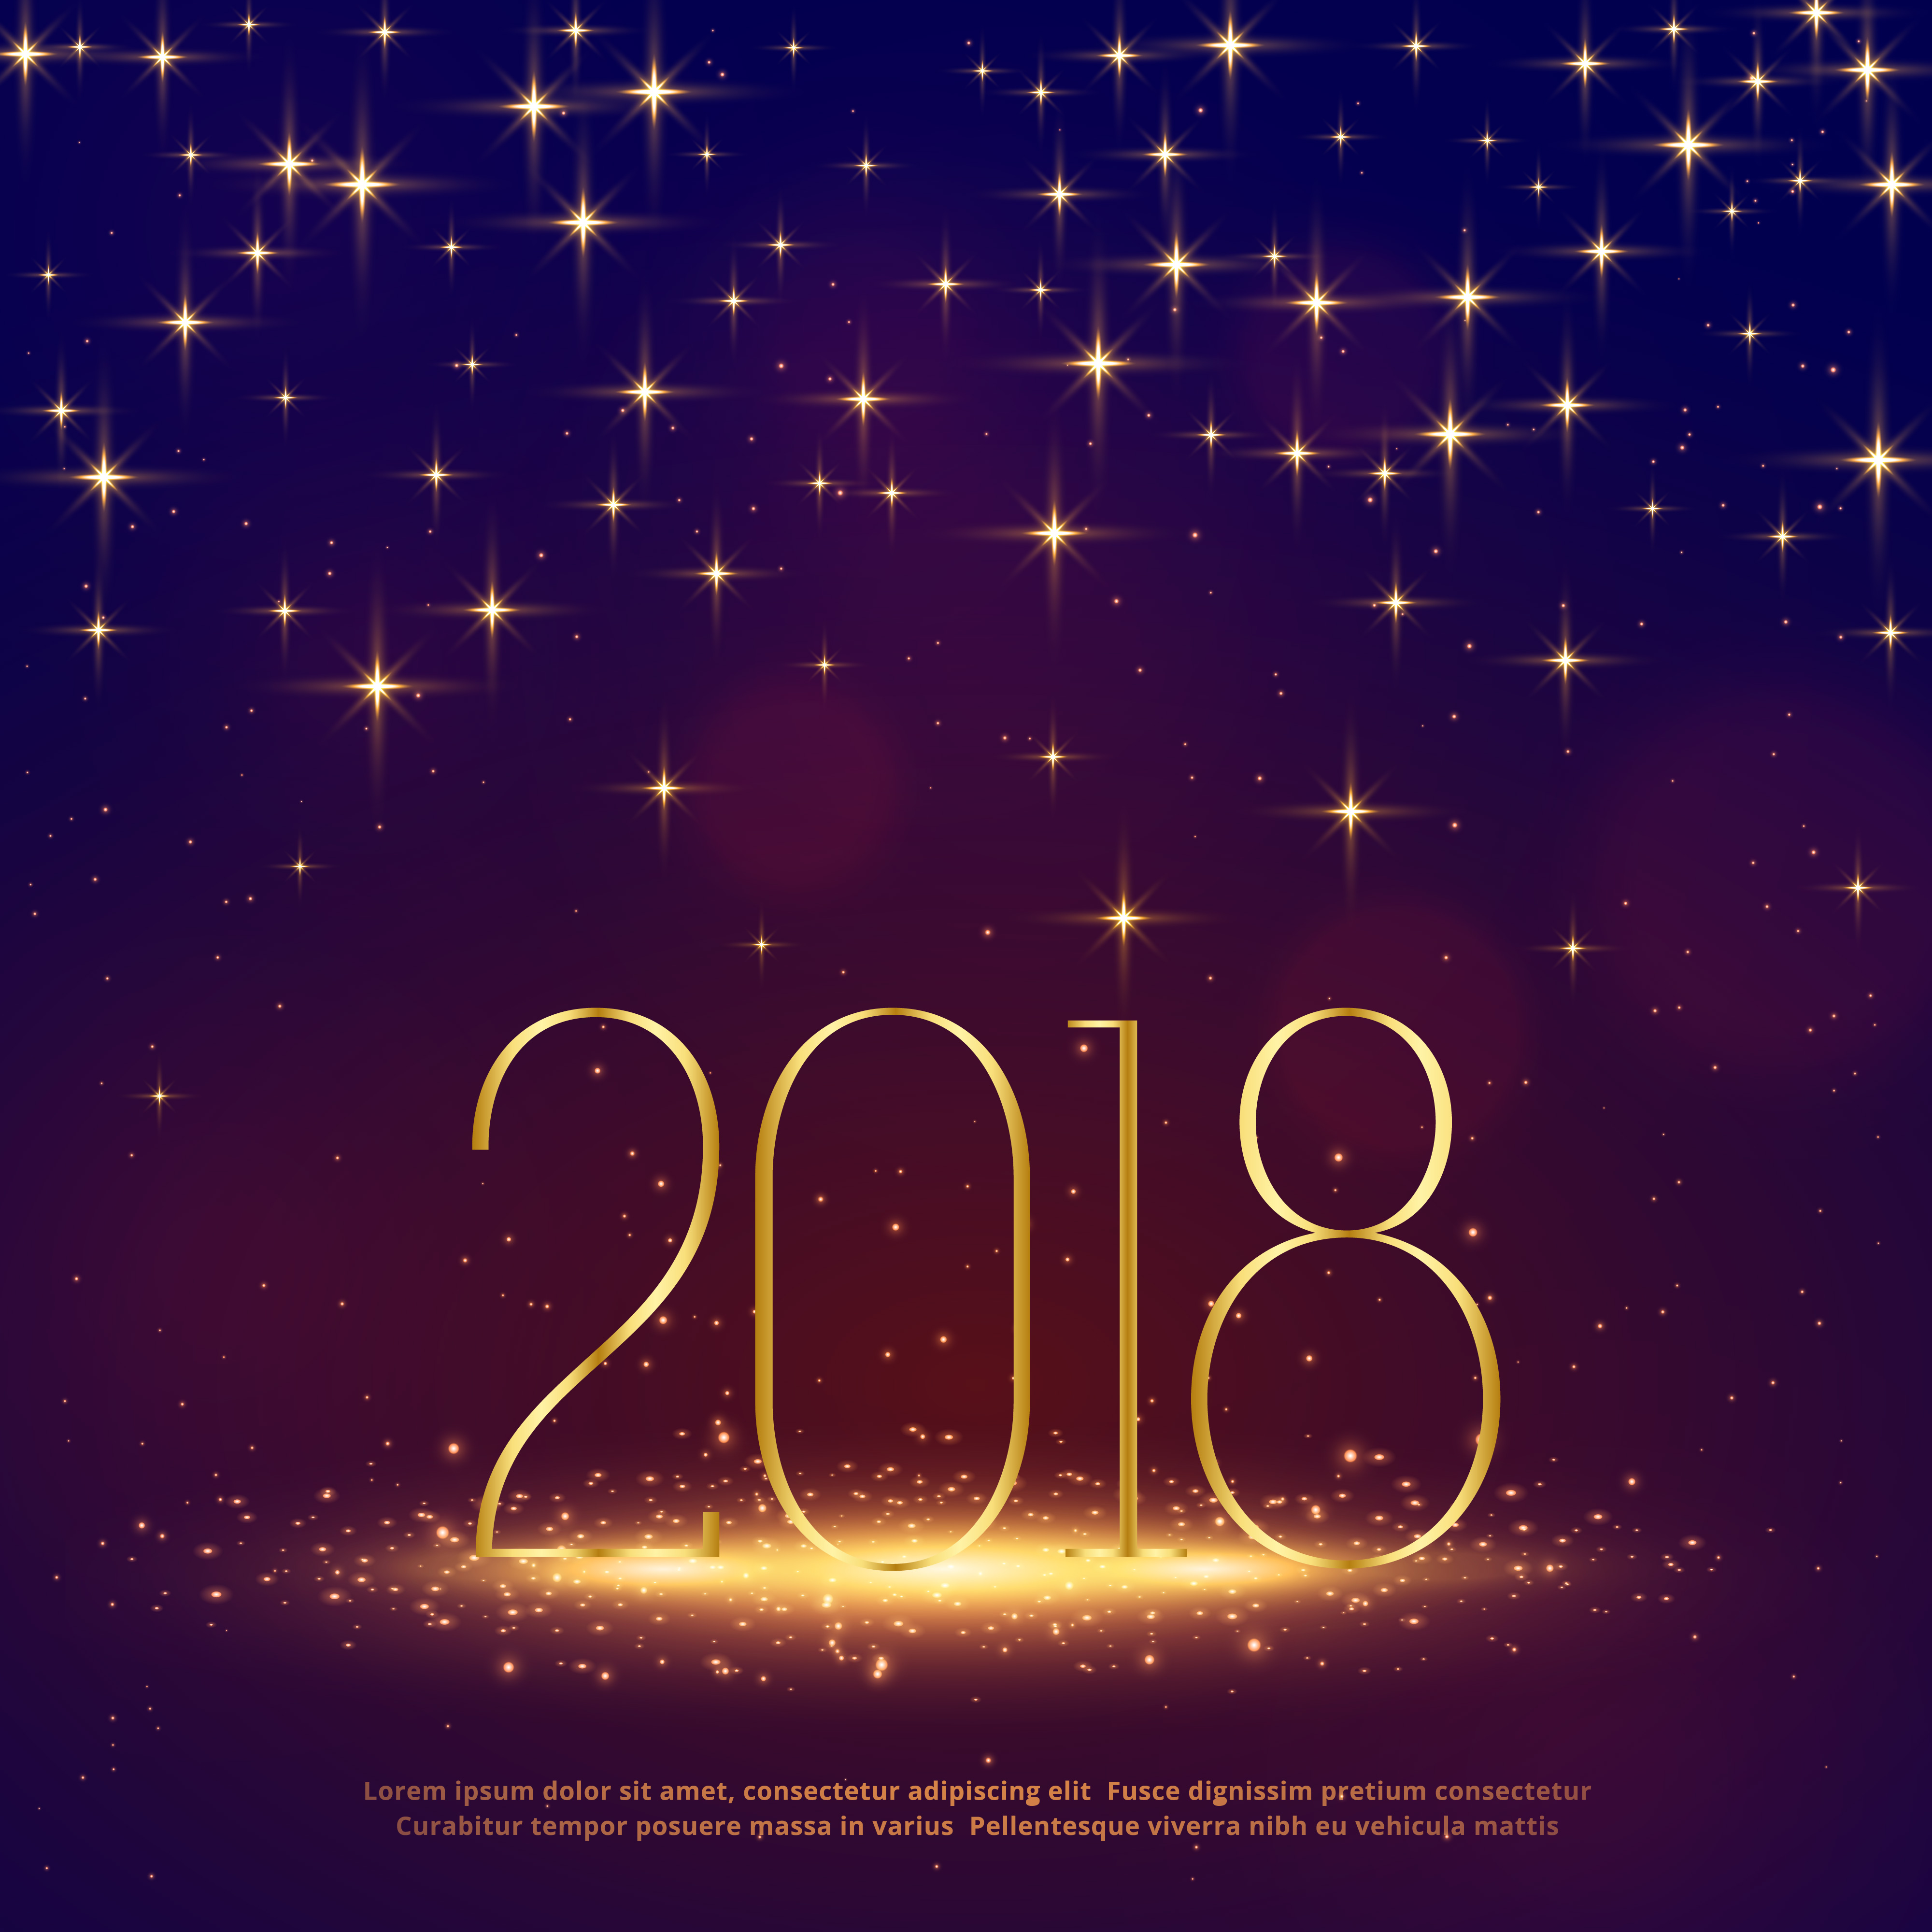 2018 glitter background with sparkles for happy new year download free vector art stock graphics images